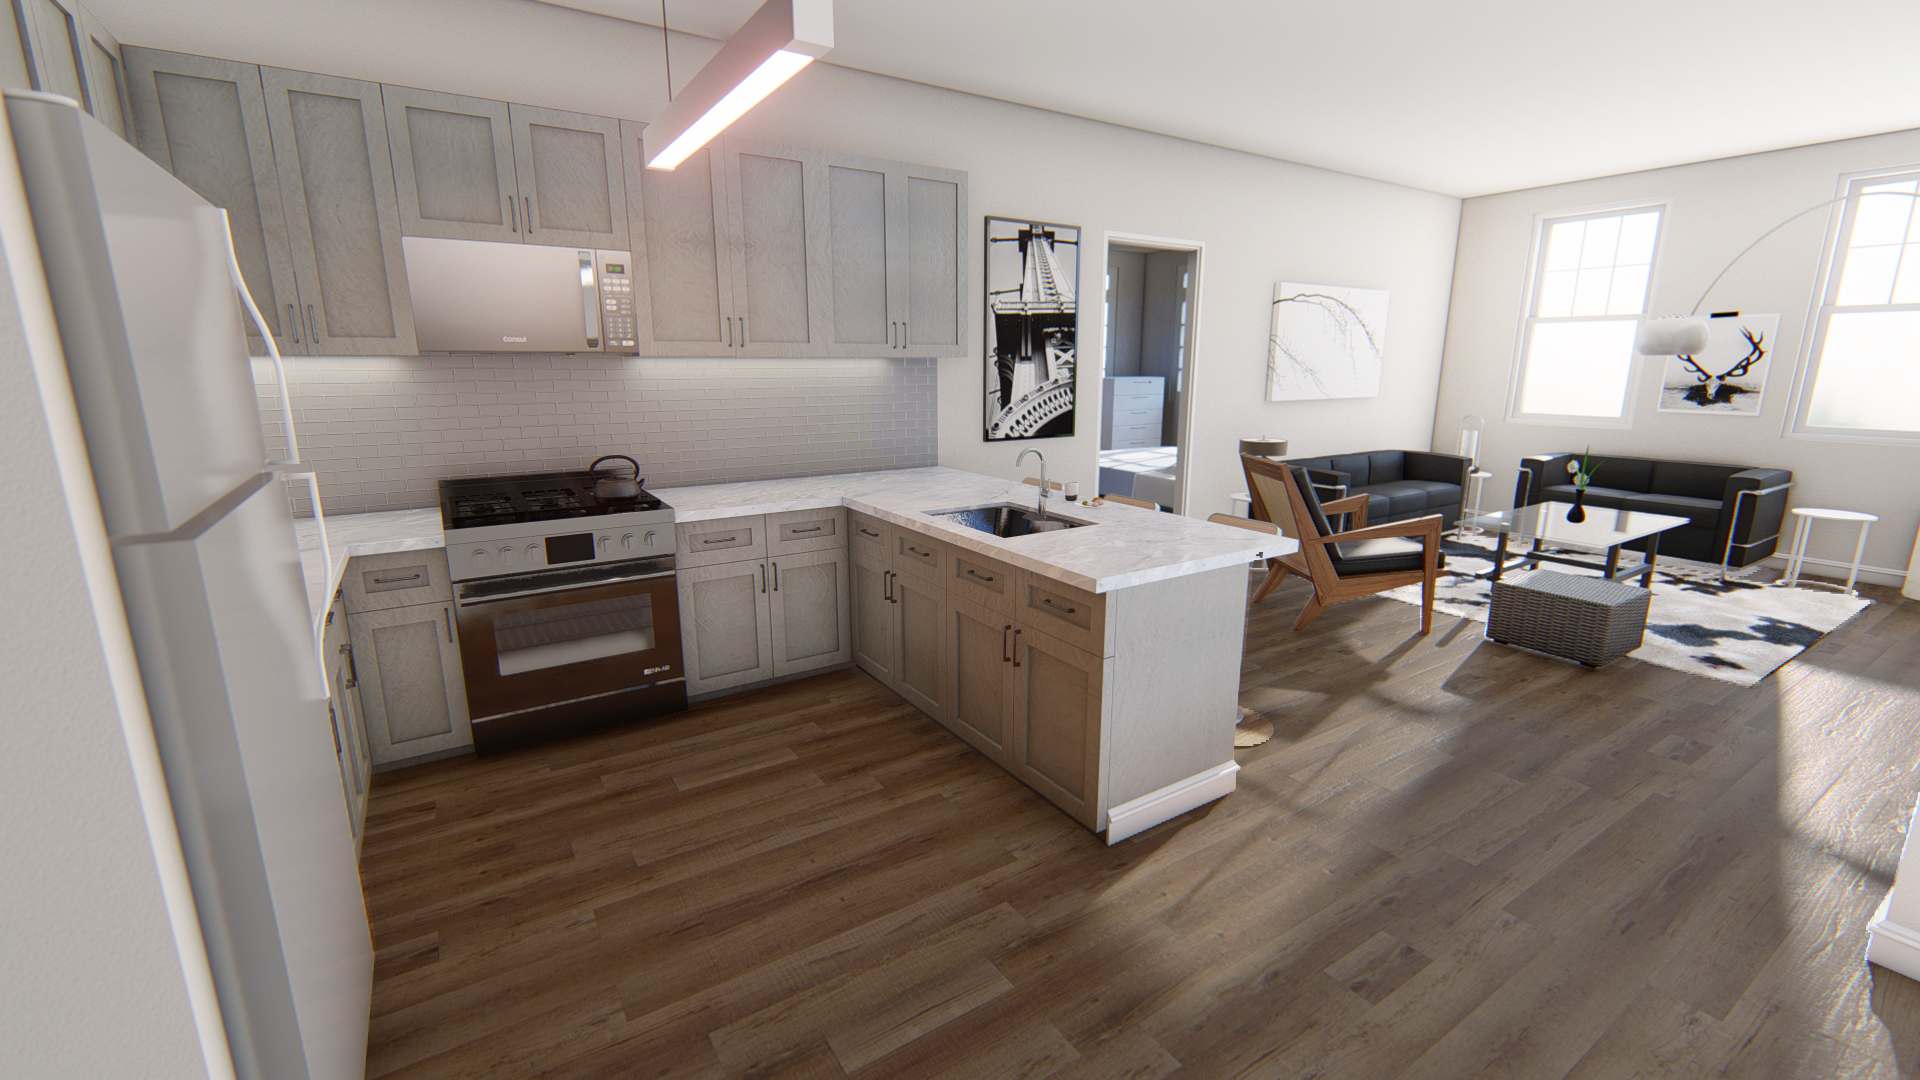 Kitchen Render_Unit 2B_Final3.jpg